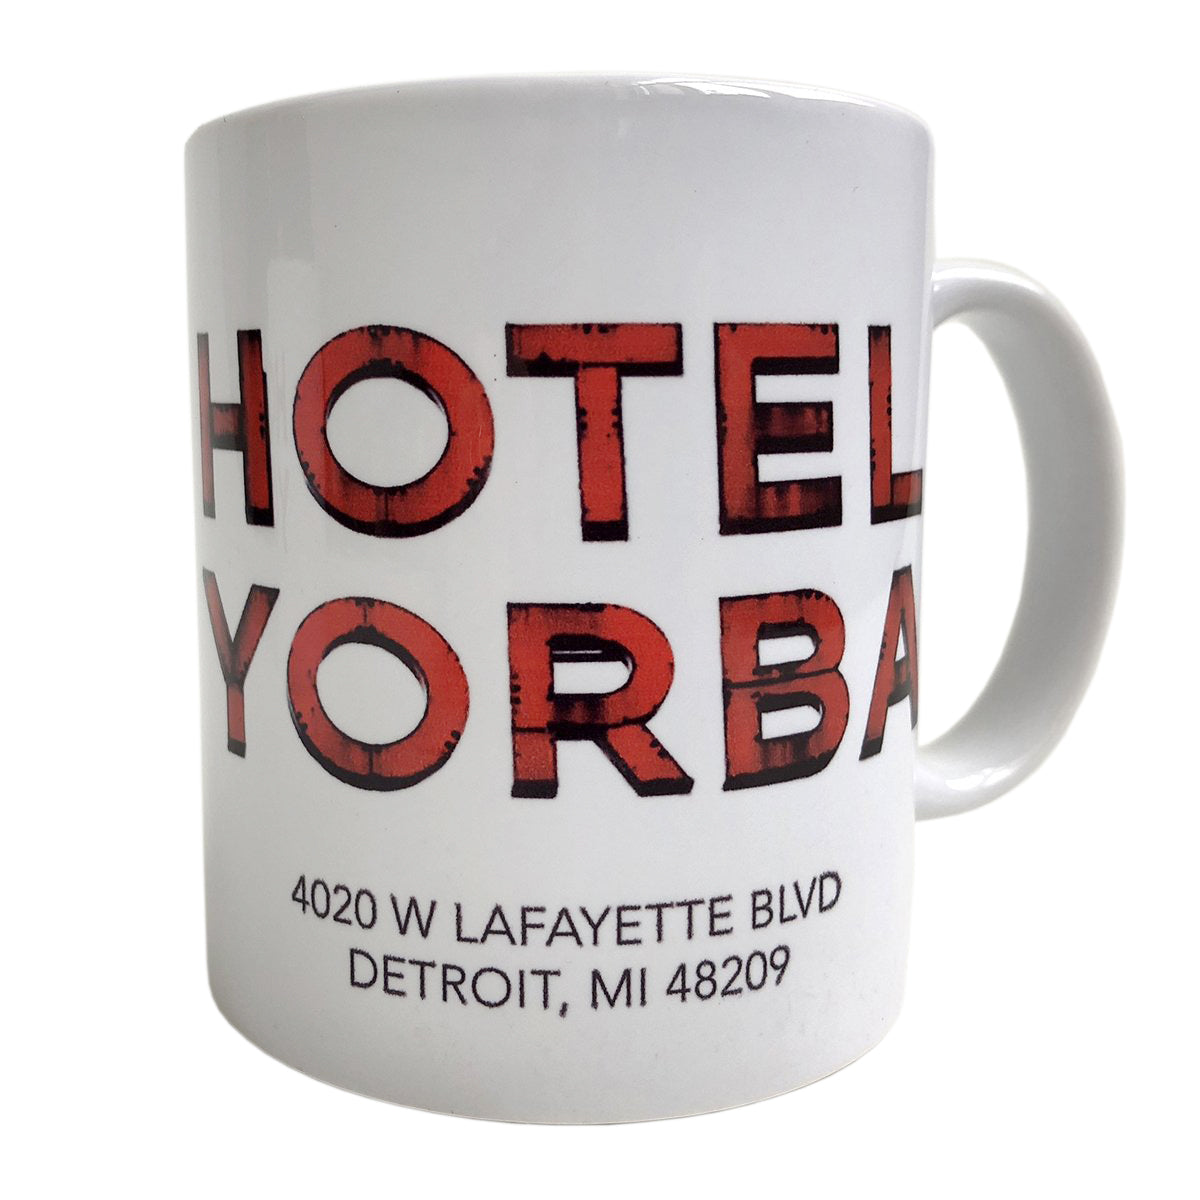 Hotel yorba mug detroit coffee cup well done goods hotel yorba coffee mug well done goods malvernweather Image collections